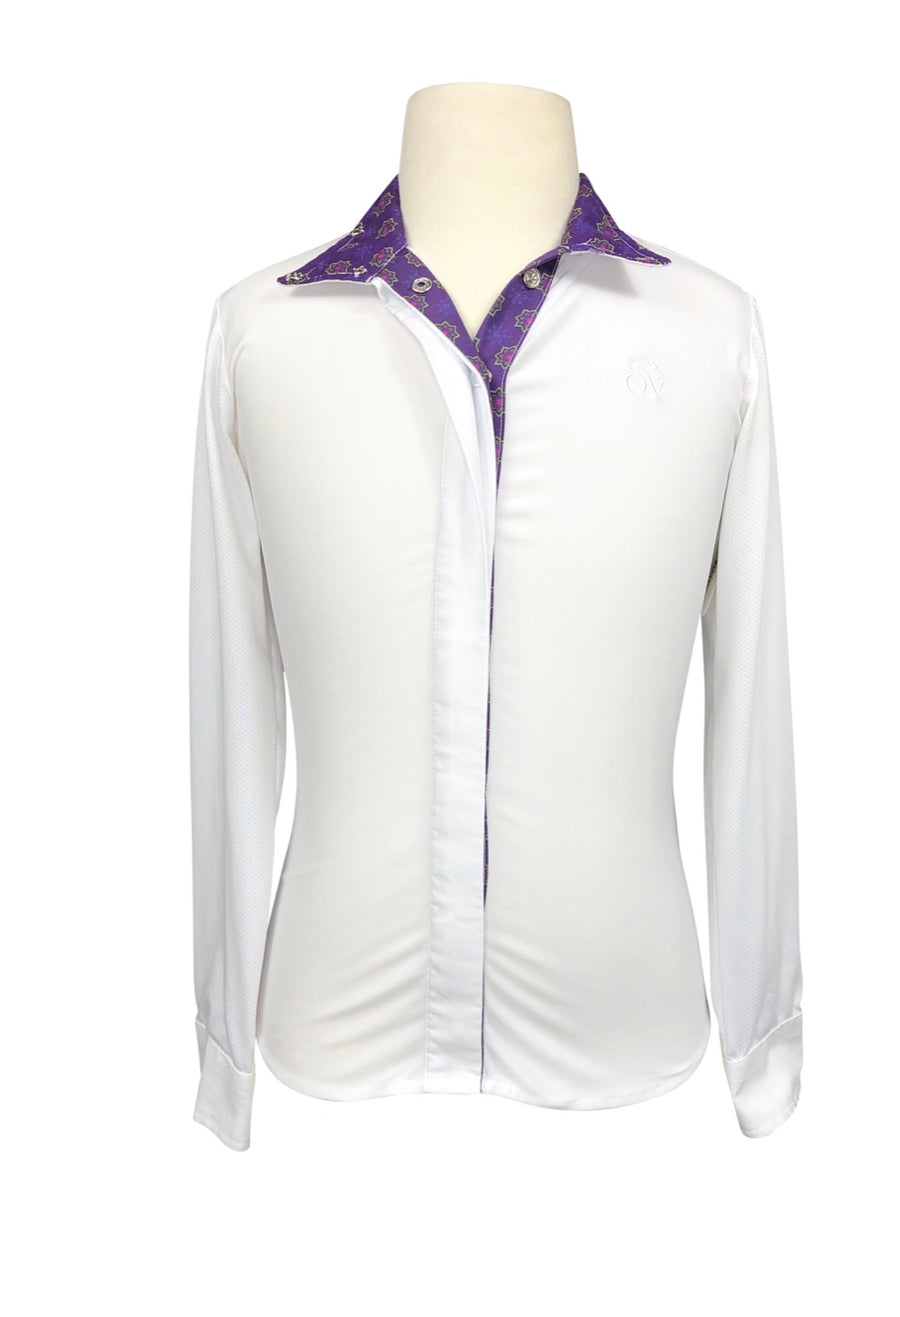 Ovation Ellie Tech Show Shirt in White/Purple - Children's 10 | M